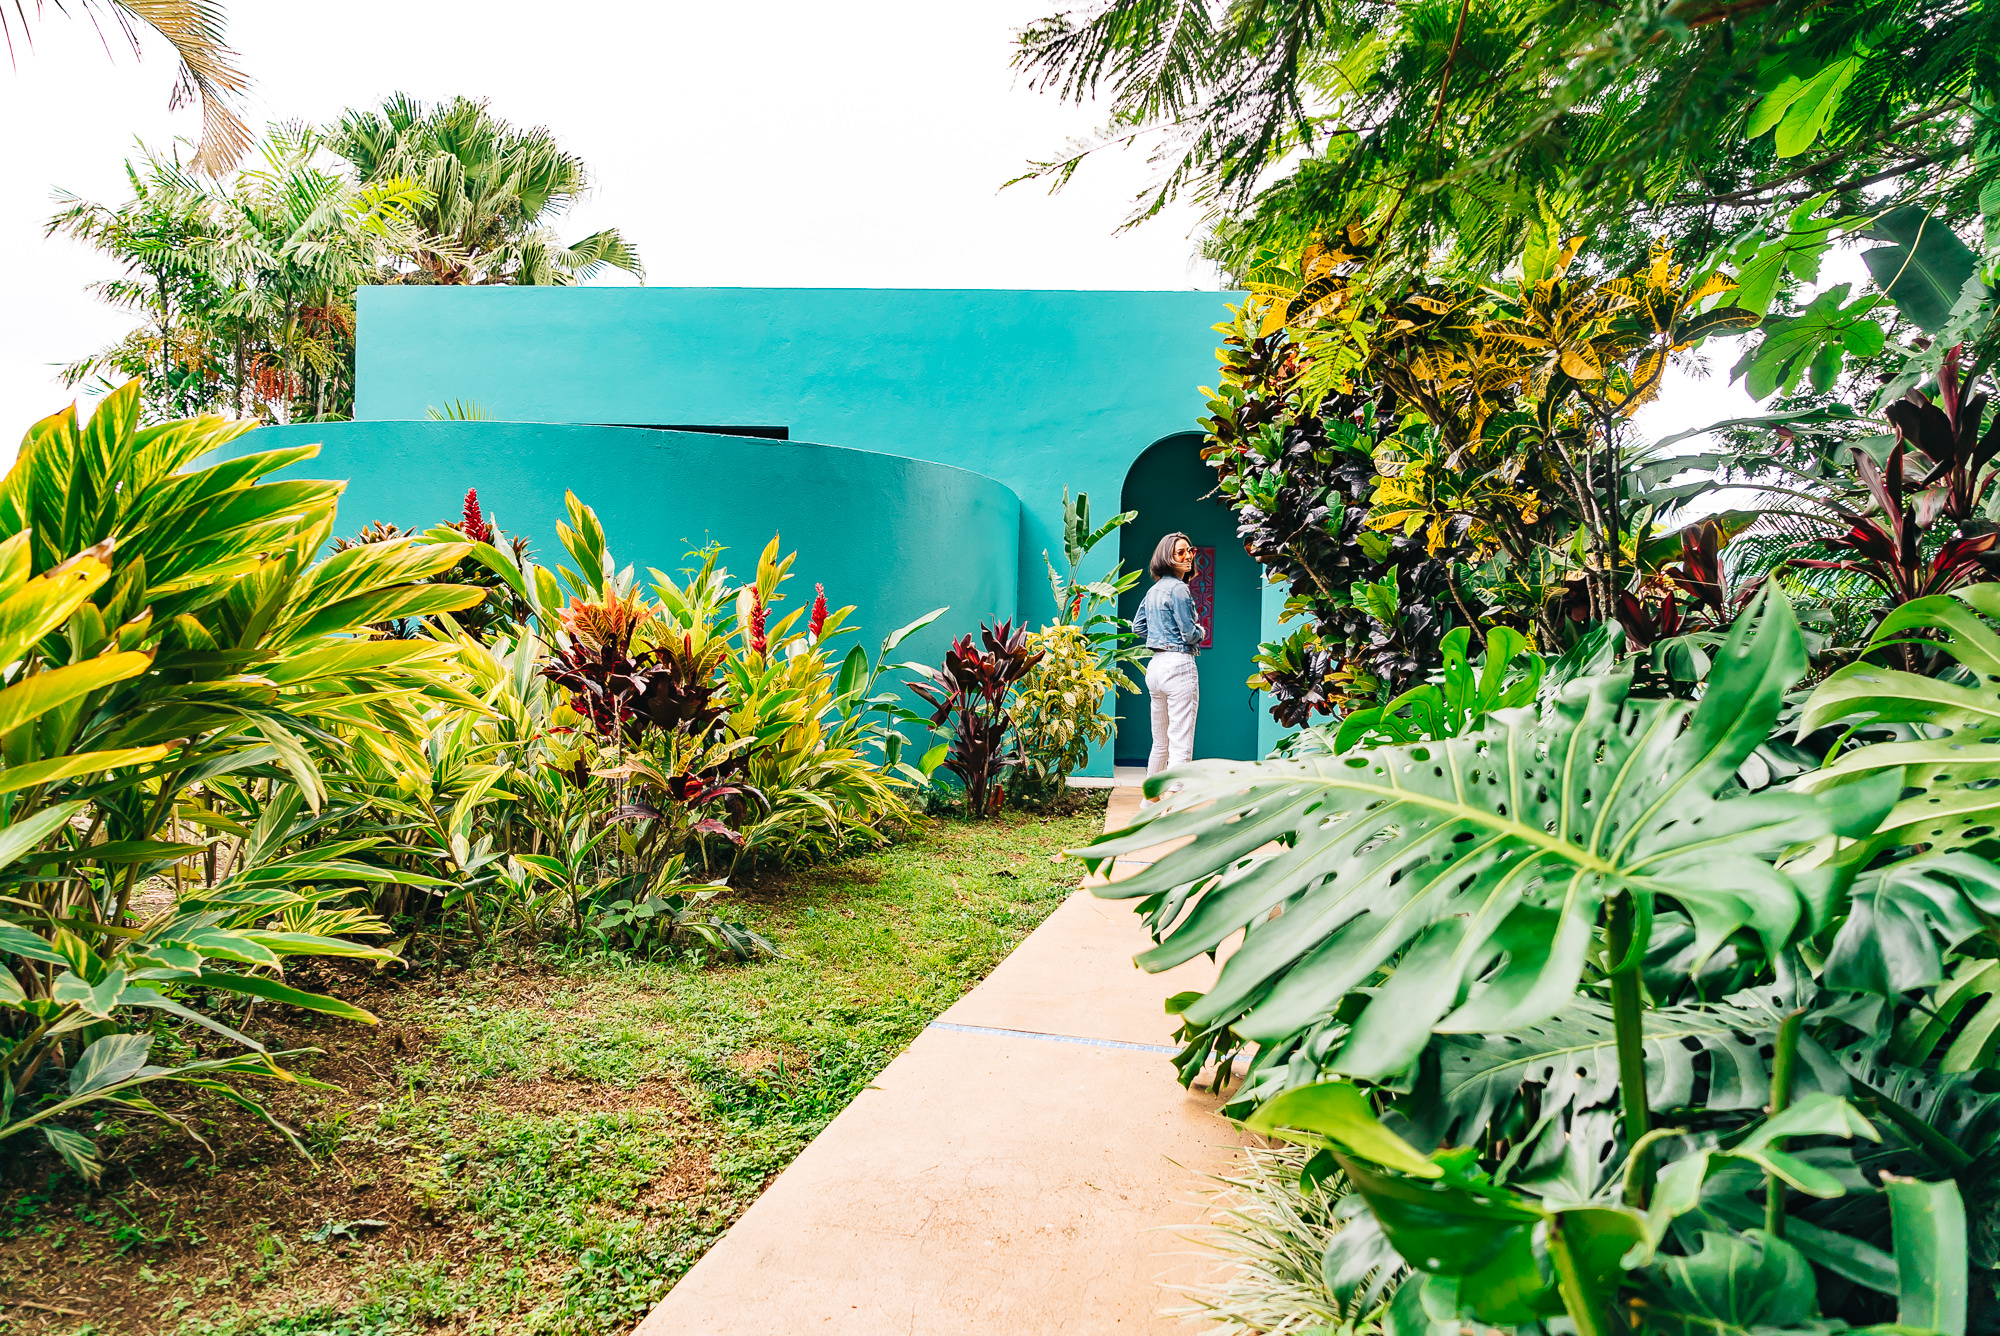 Our villa was surrounded by luscious greenery at   Xandari Resort and Spa